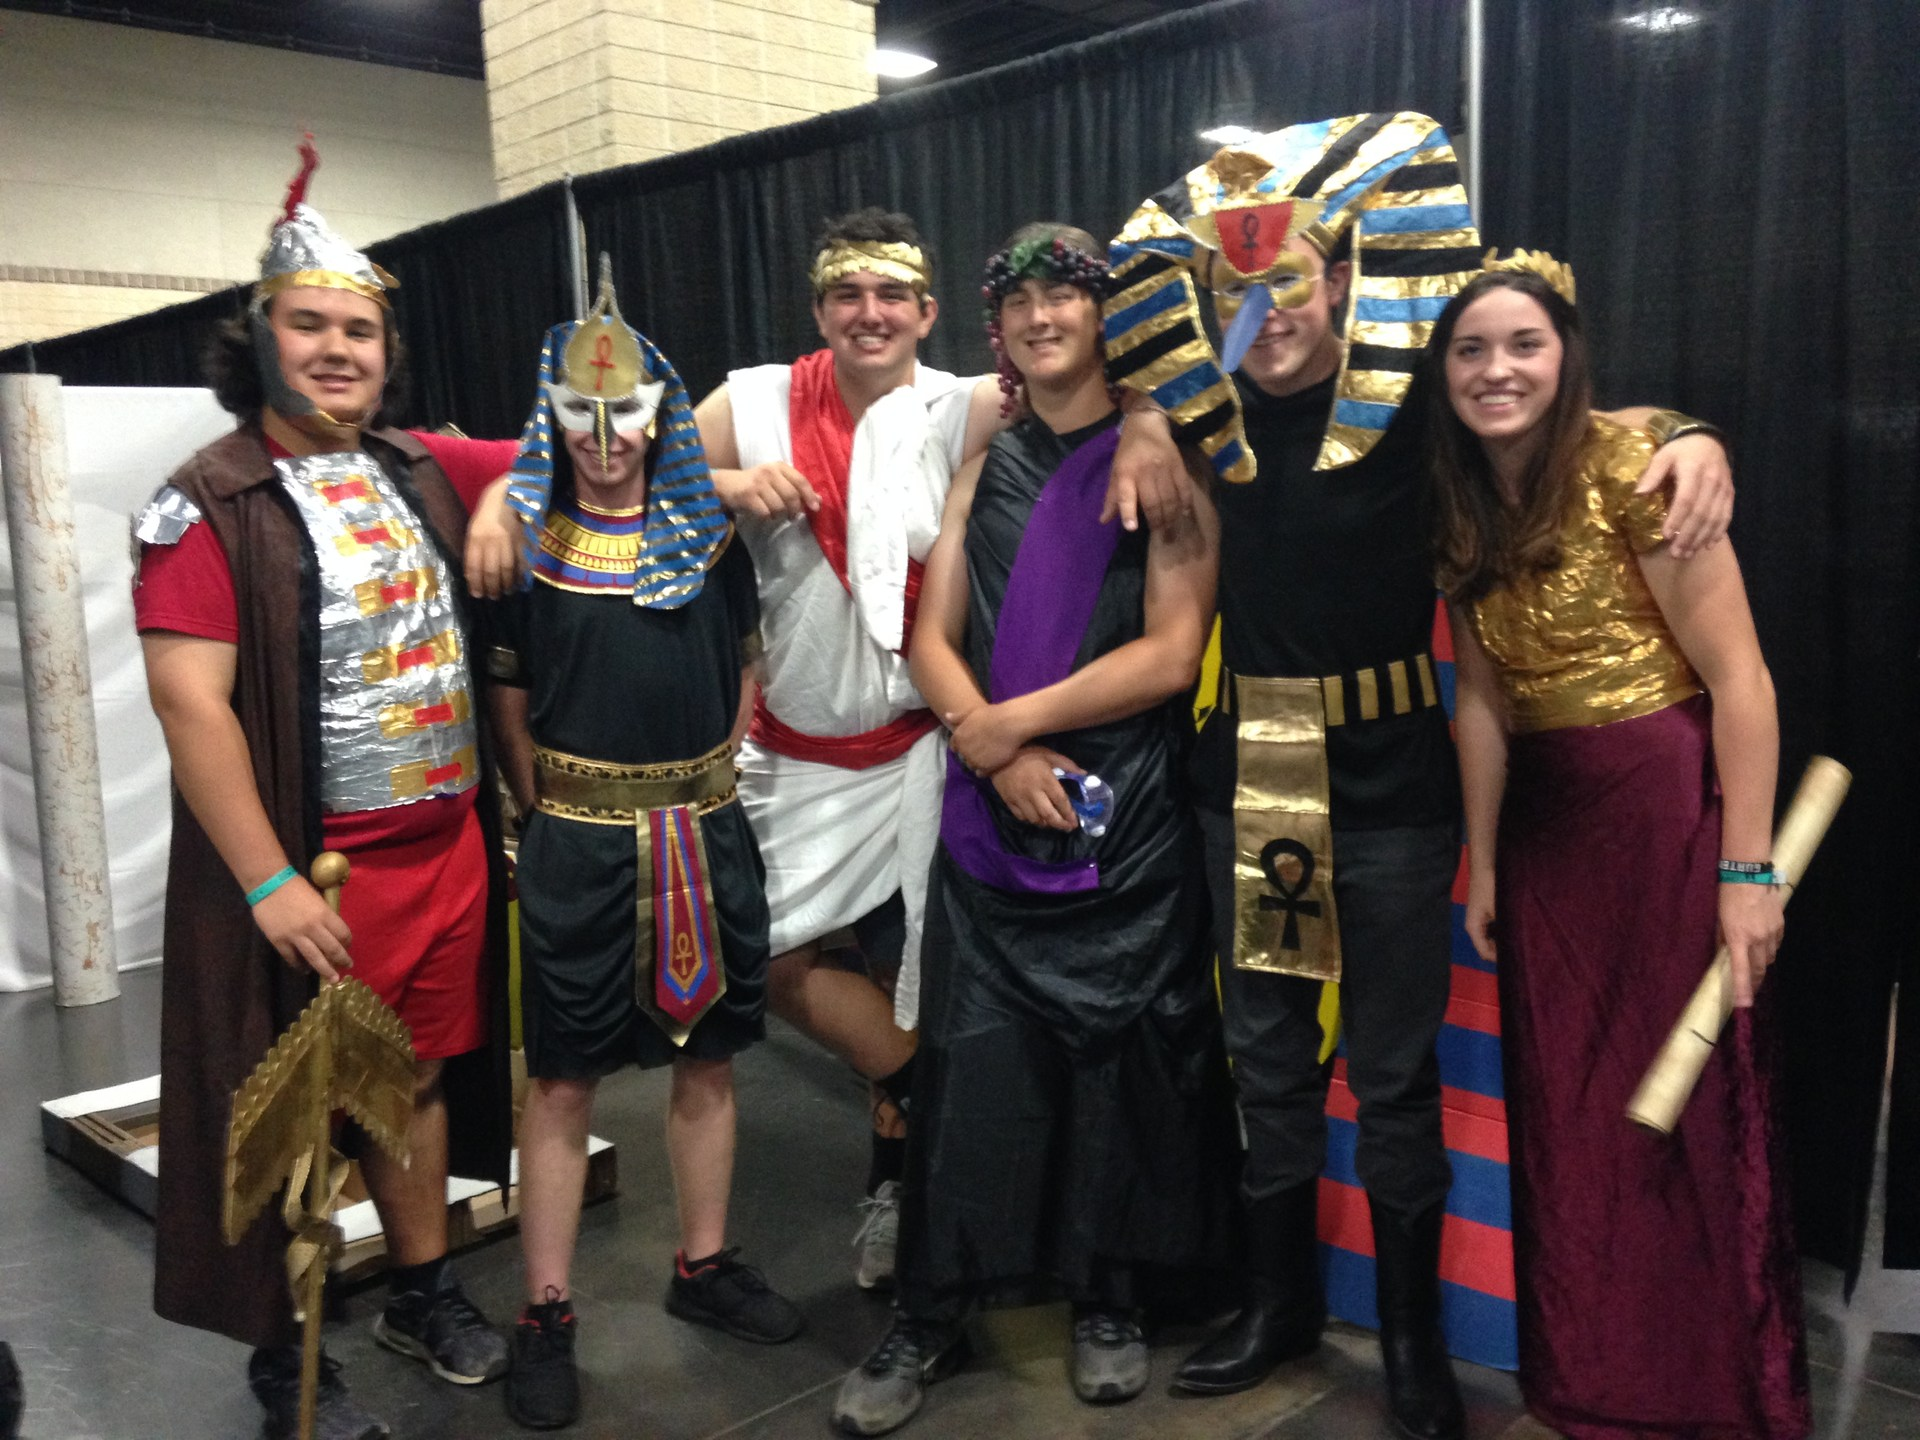 DI team in Egyptian costumes